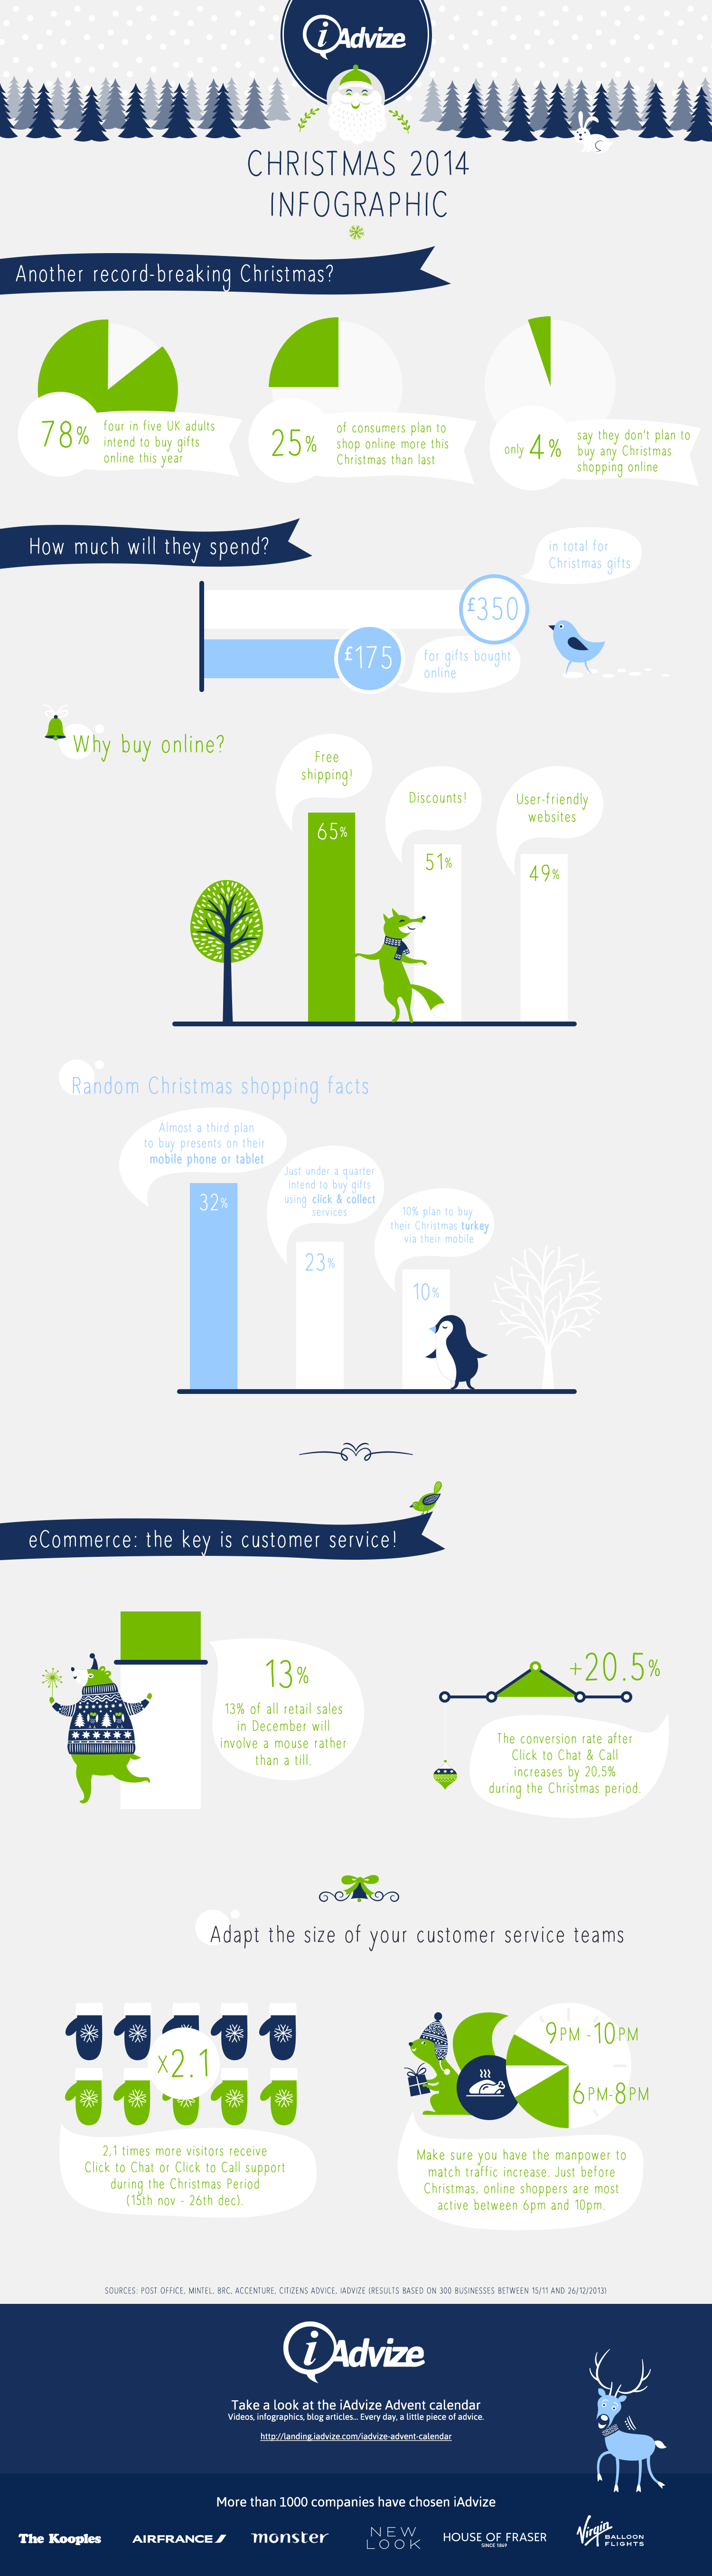 Christmas infographic about online behaviour UK consumers